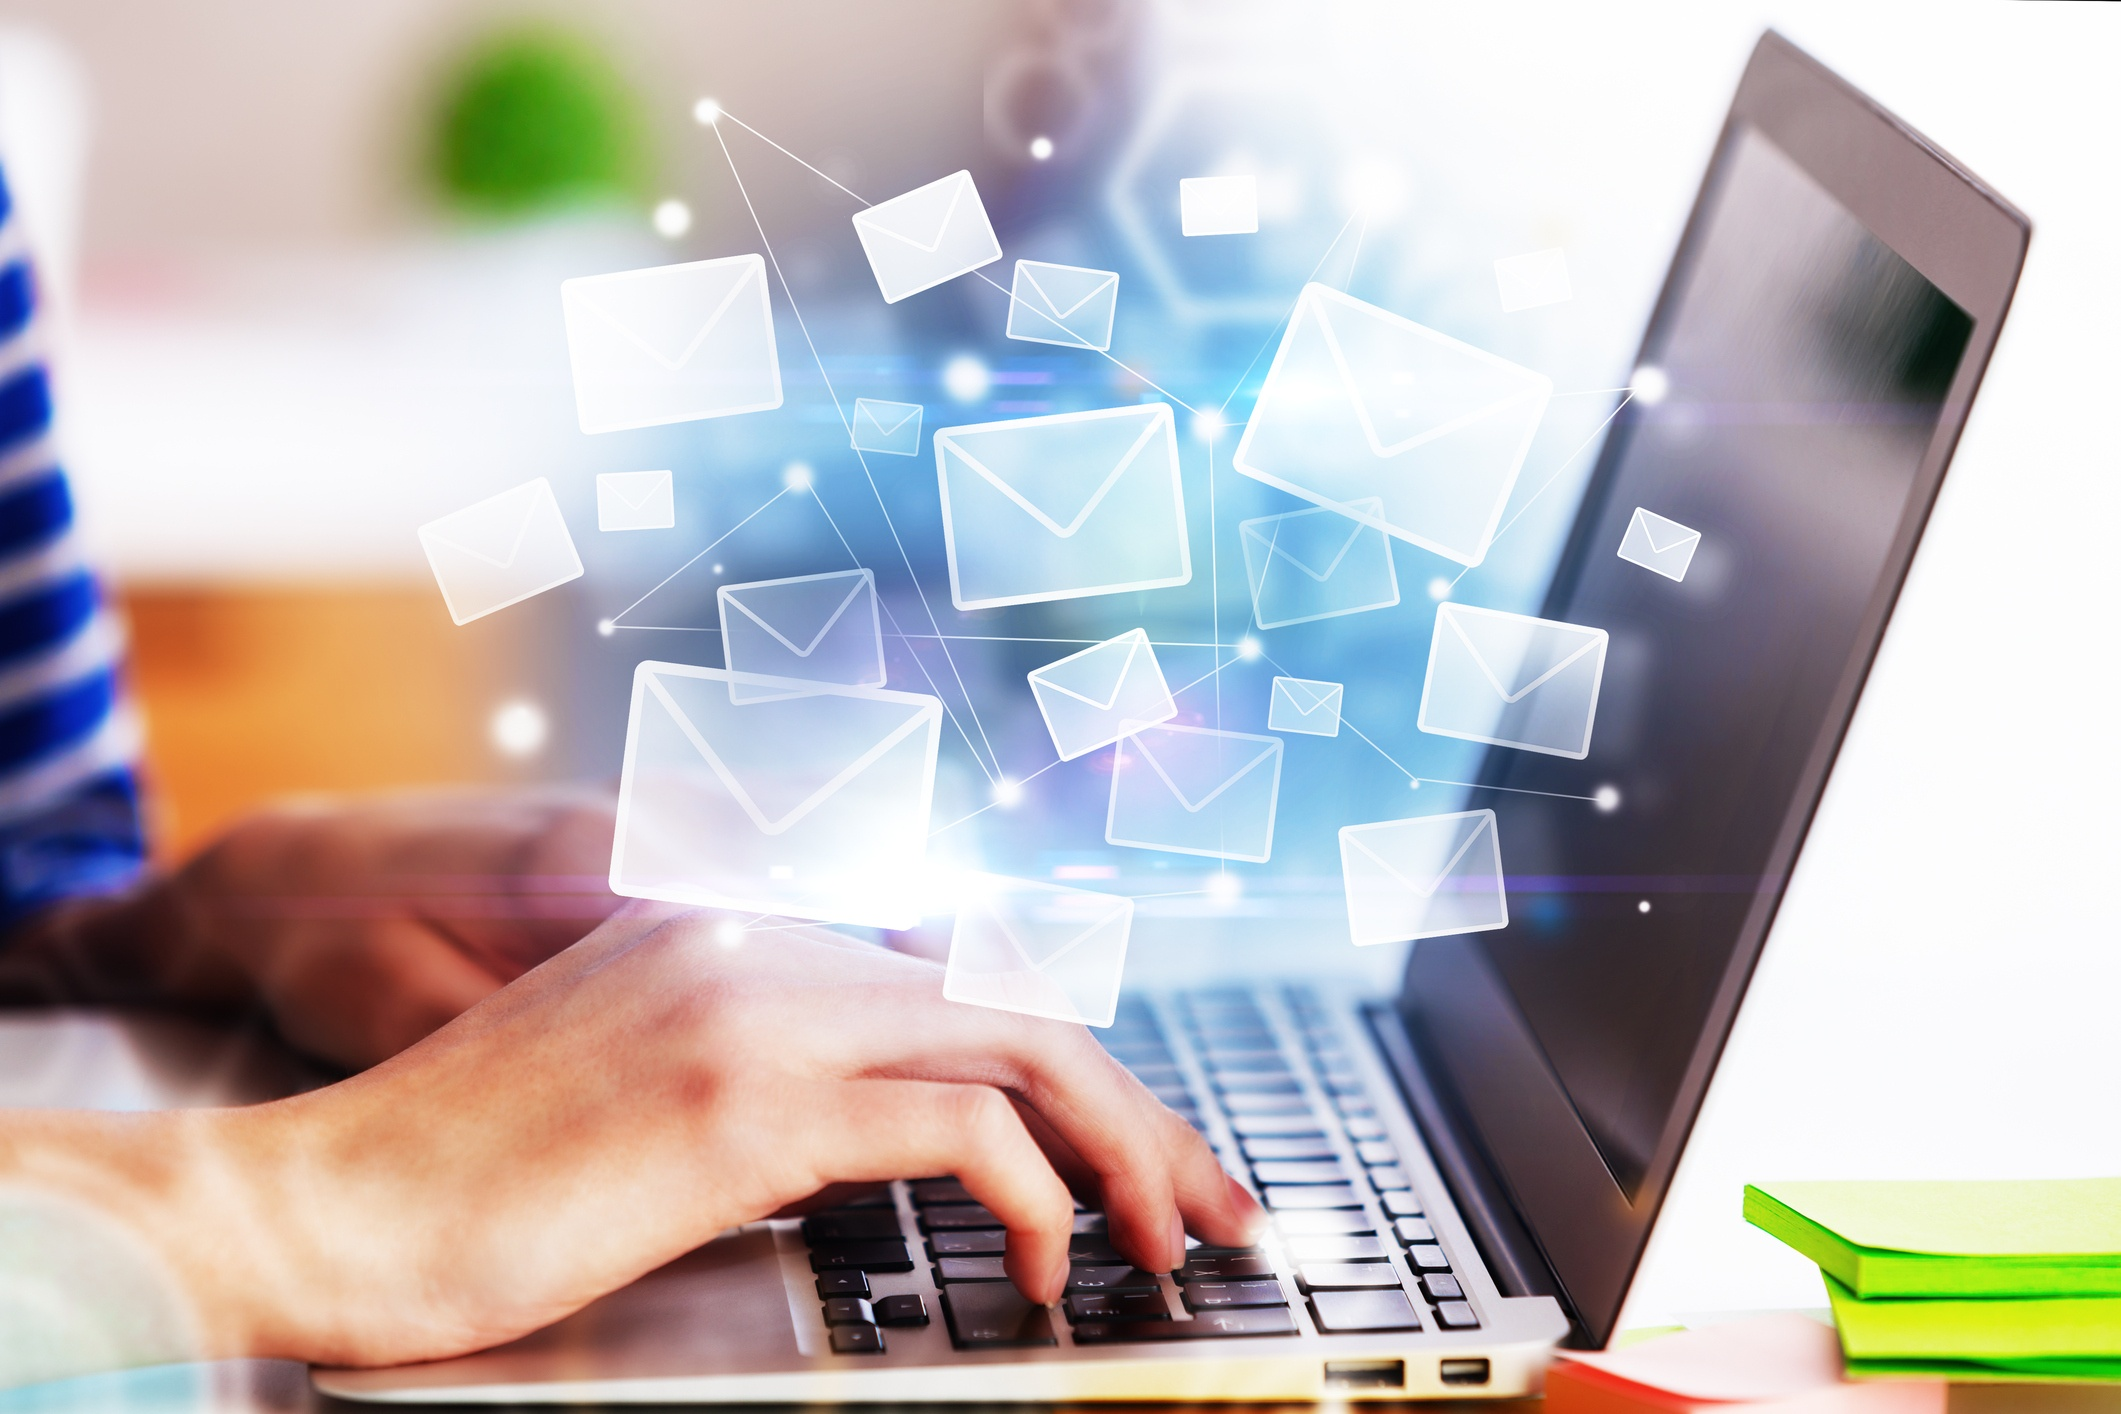 email-marketing-campaign-success-iStock-904118342